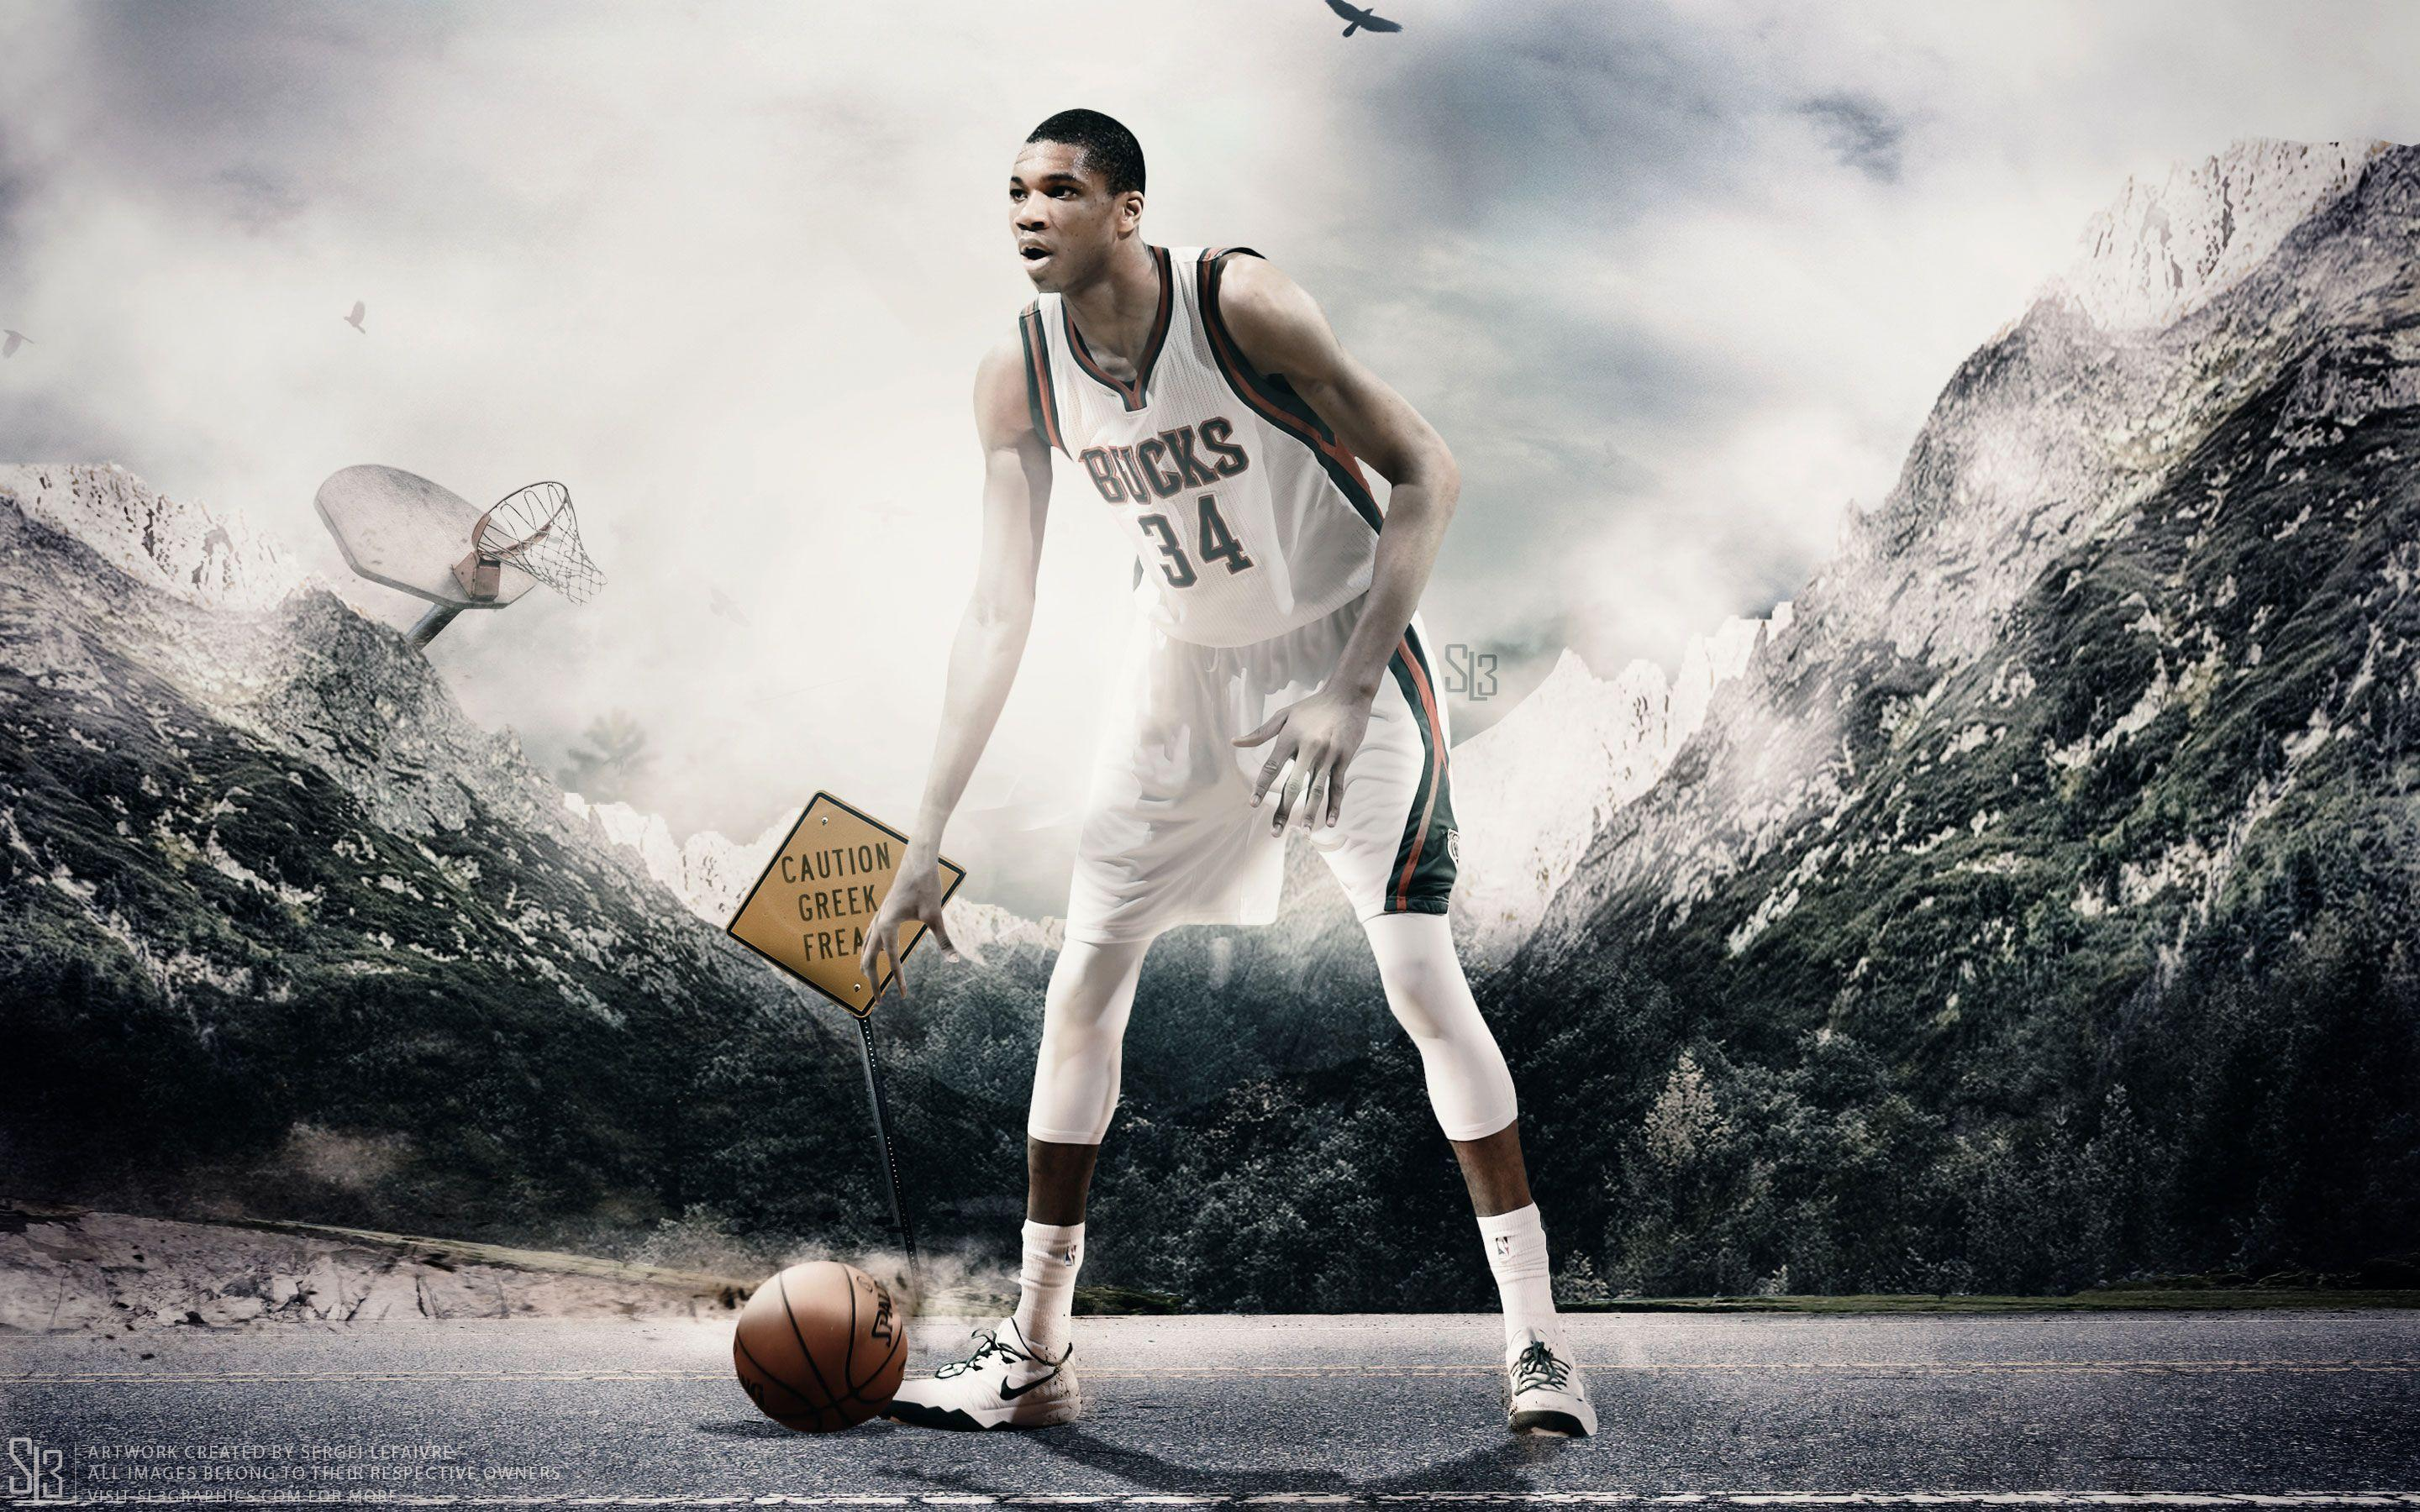 Giannis Antetokounmpo Wallpapers | Basketball Wallpapers at ...